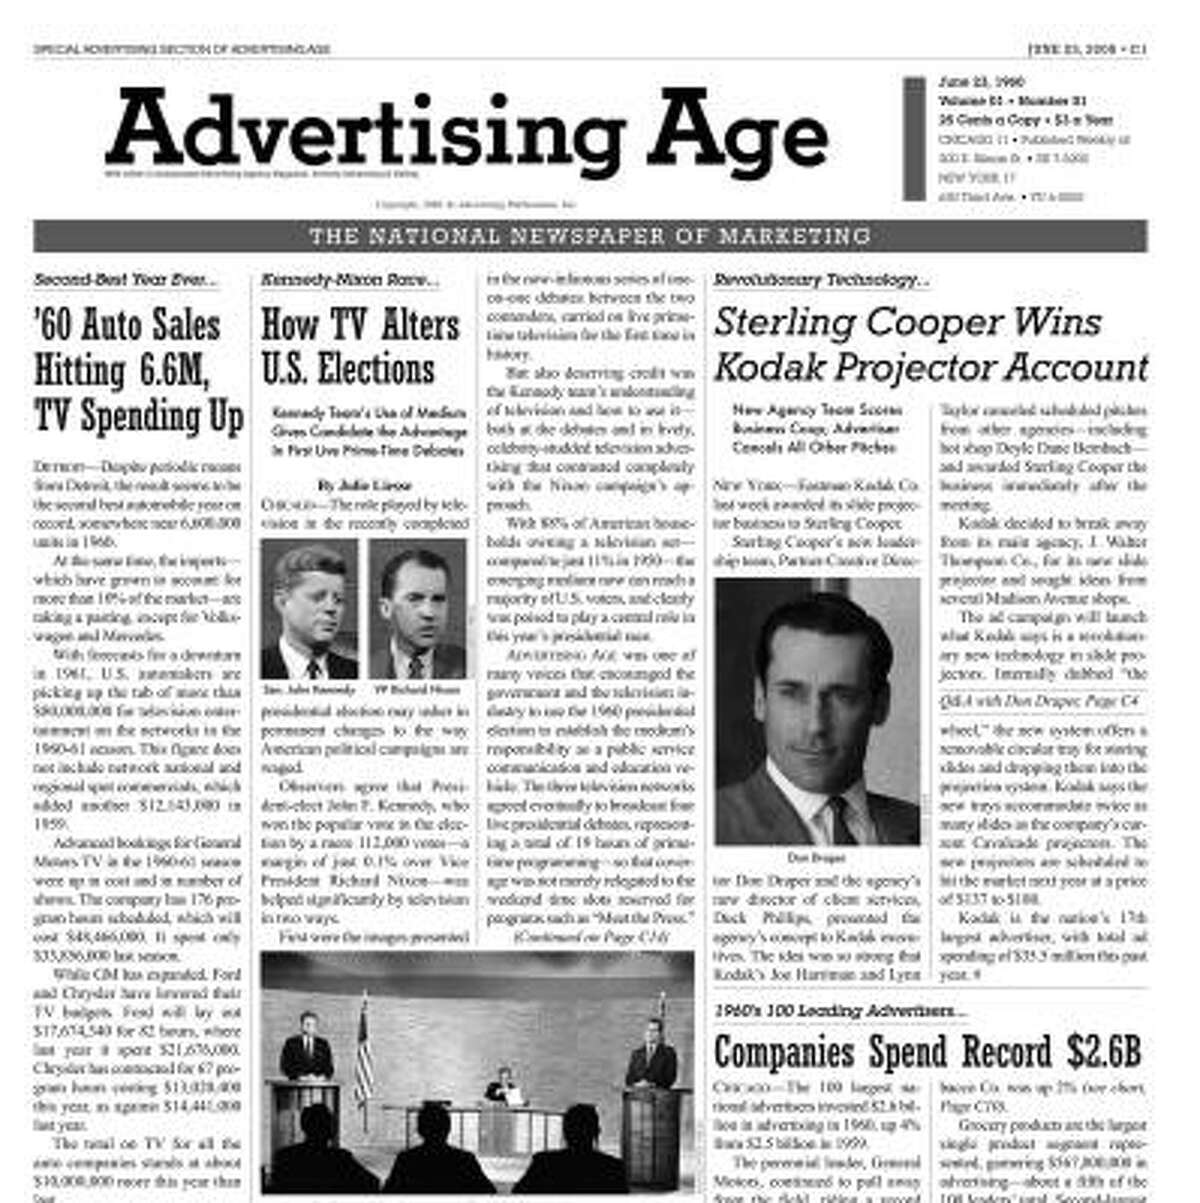 Mad Men, a television series about an advertising agency in the 1960s, is inspiring commercials, designer fashions, merchandise such as cigarette lighters and calendars, and a mock issue of the trade publication Advertising Age.